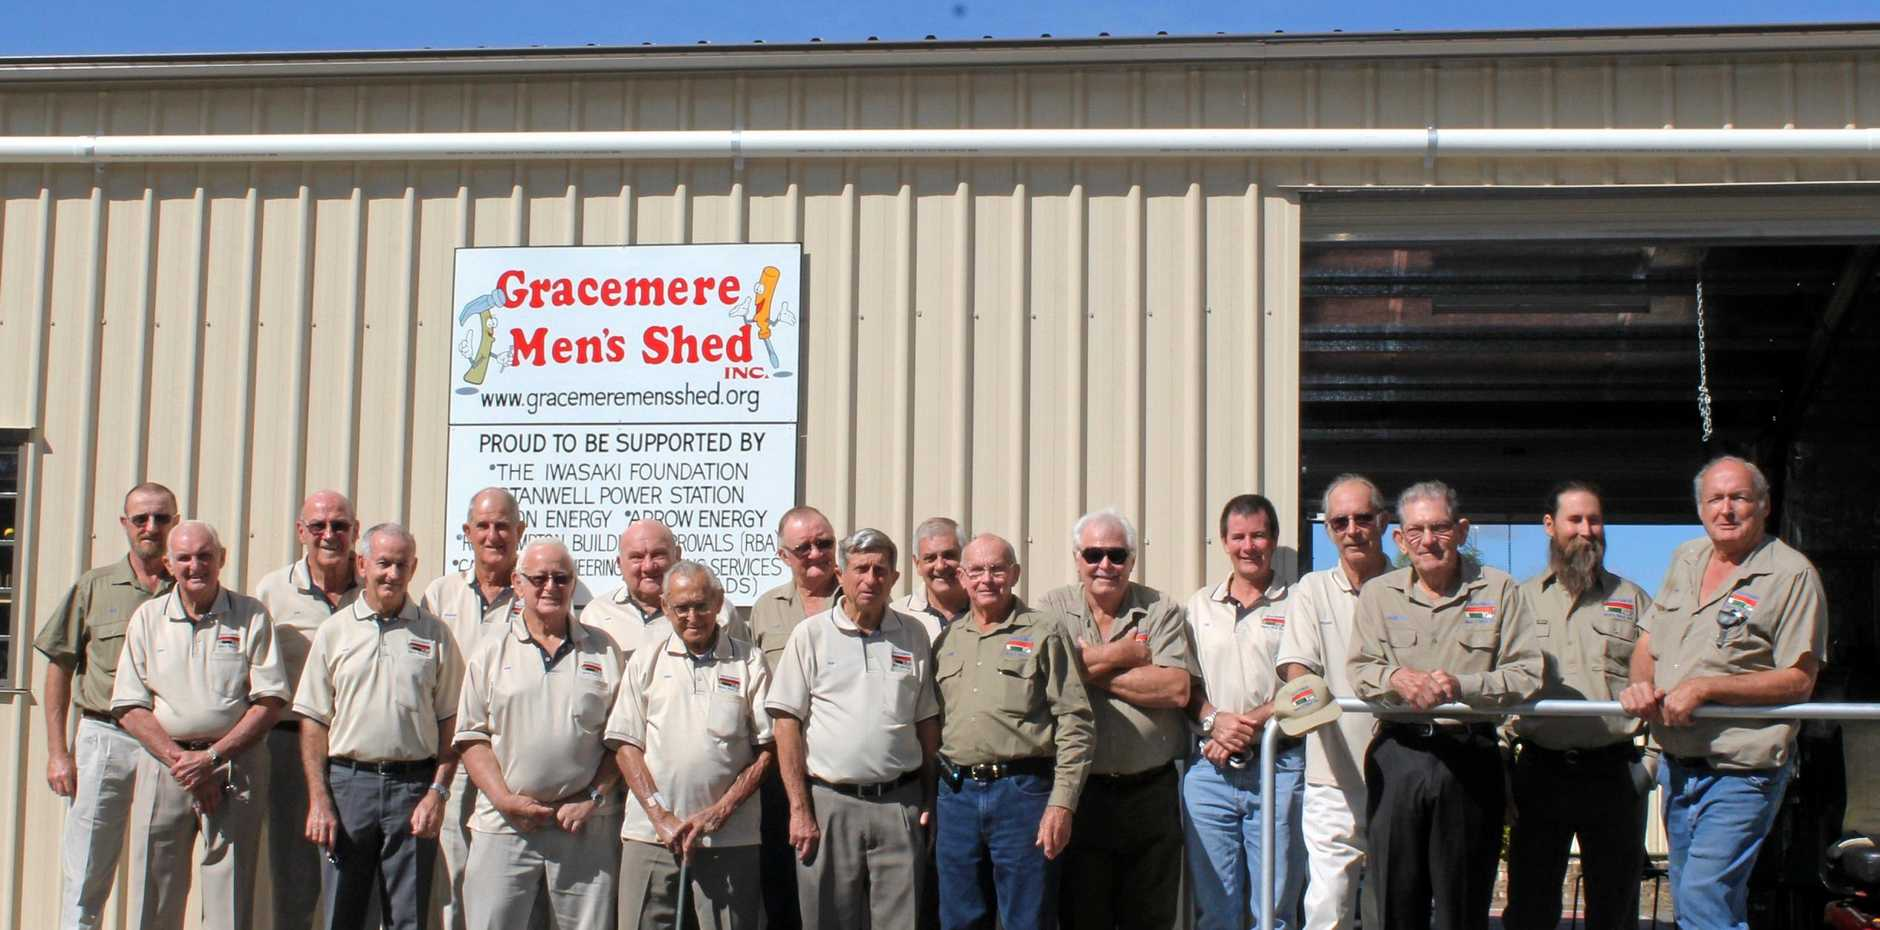 The members of the Gracemere Men's Shed celebrated their first anniversary on February 8 20215.